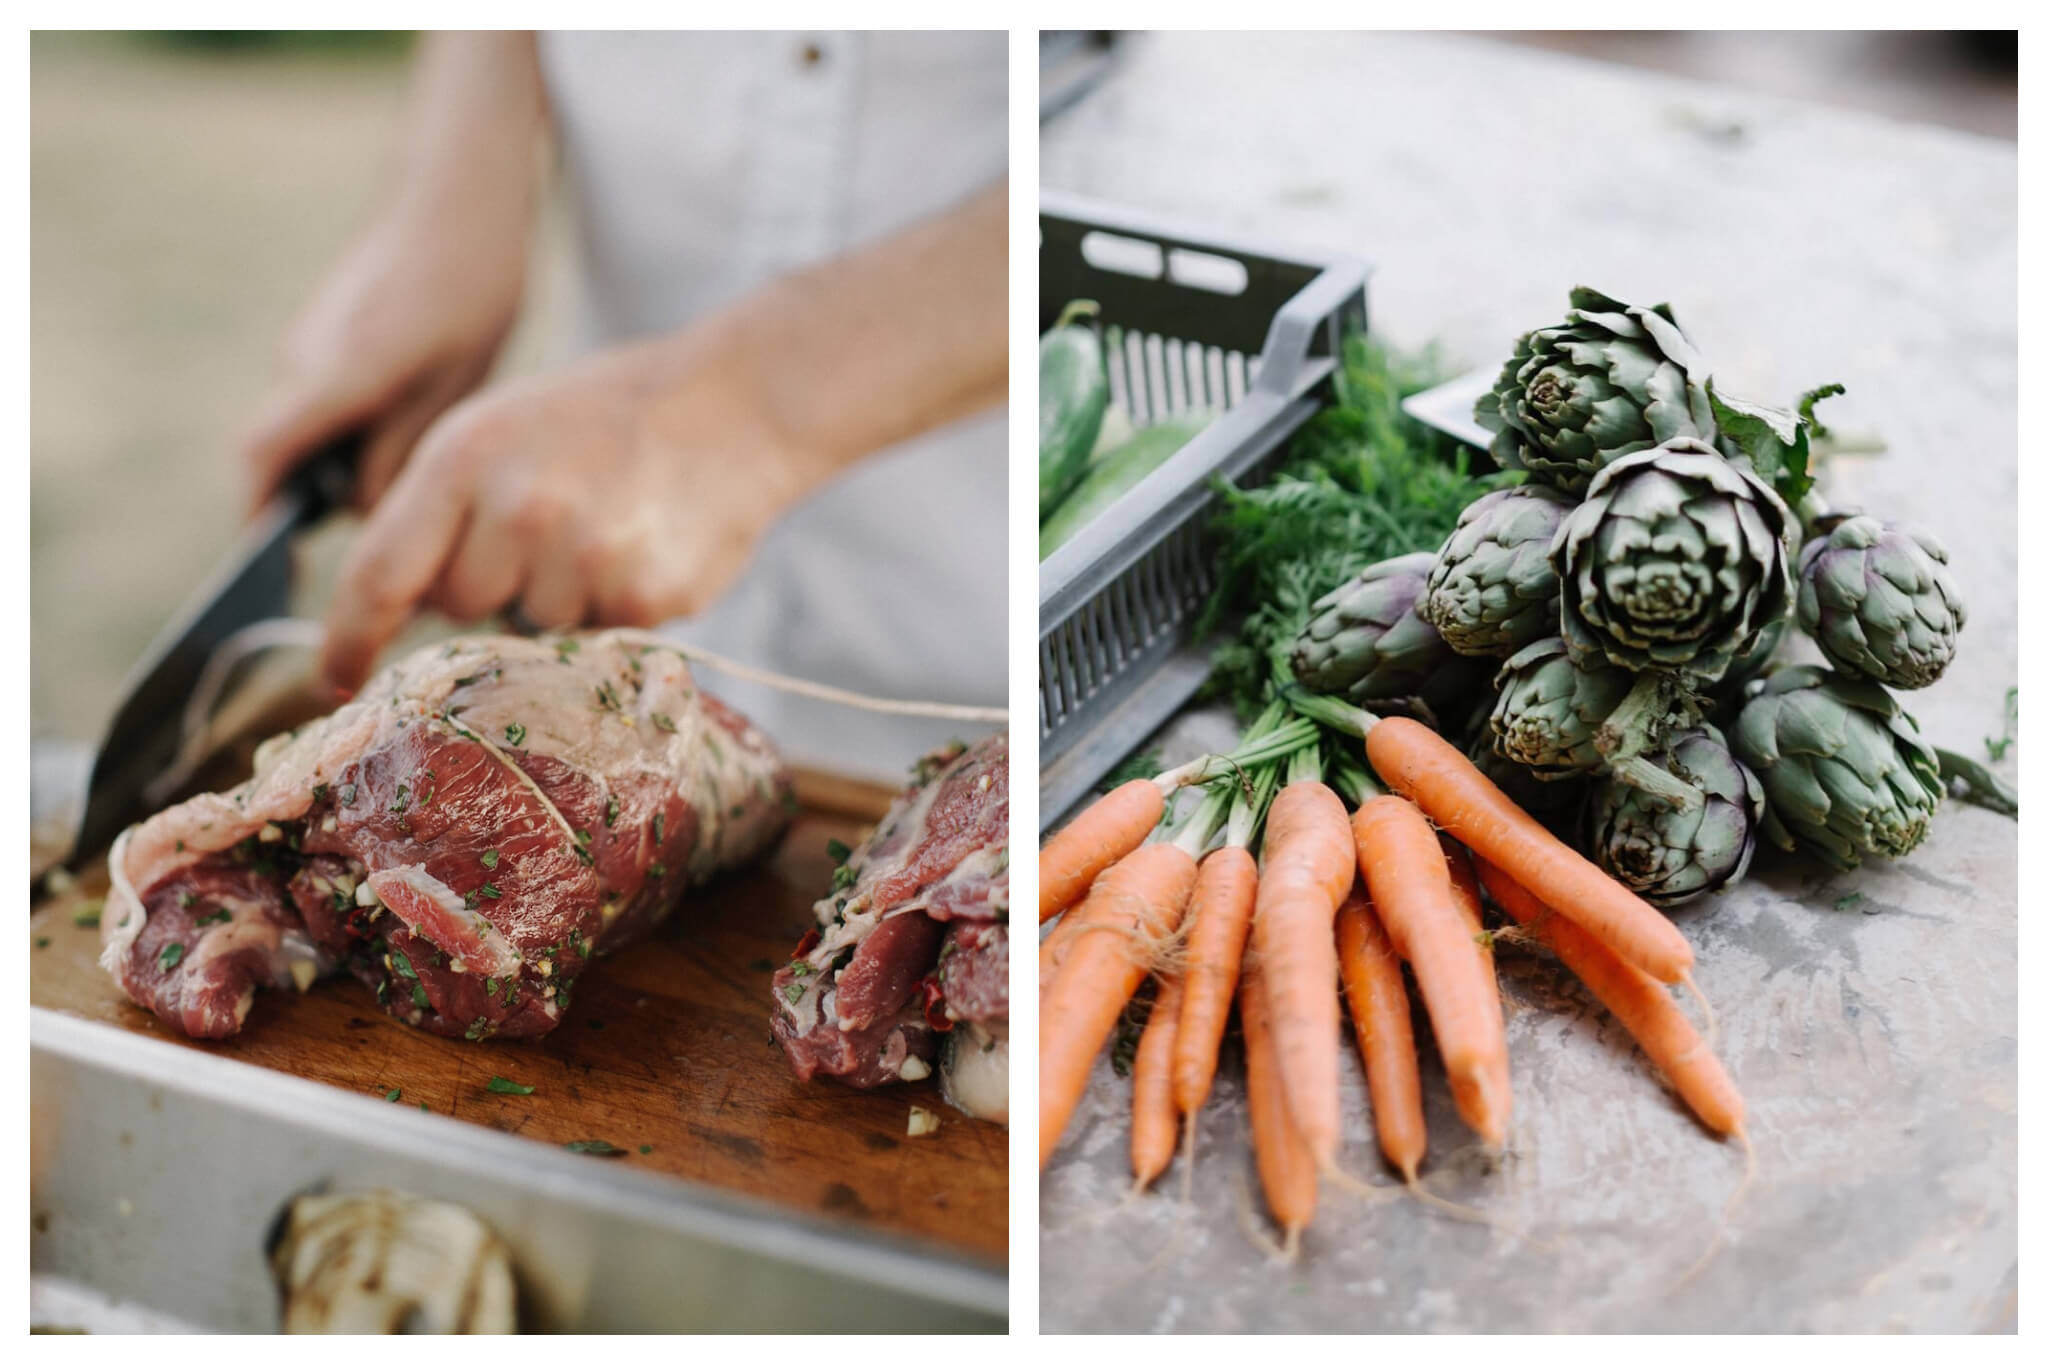 Left: A butcher slices a piece of fresh, seasoned raw meat with a butcher's cleaver, Right: Fresh produce, including carrots and artichokes, lay together on a flat surface.